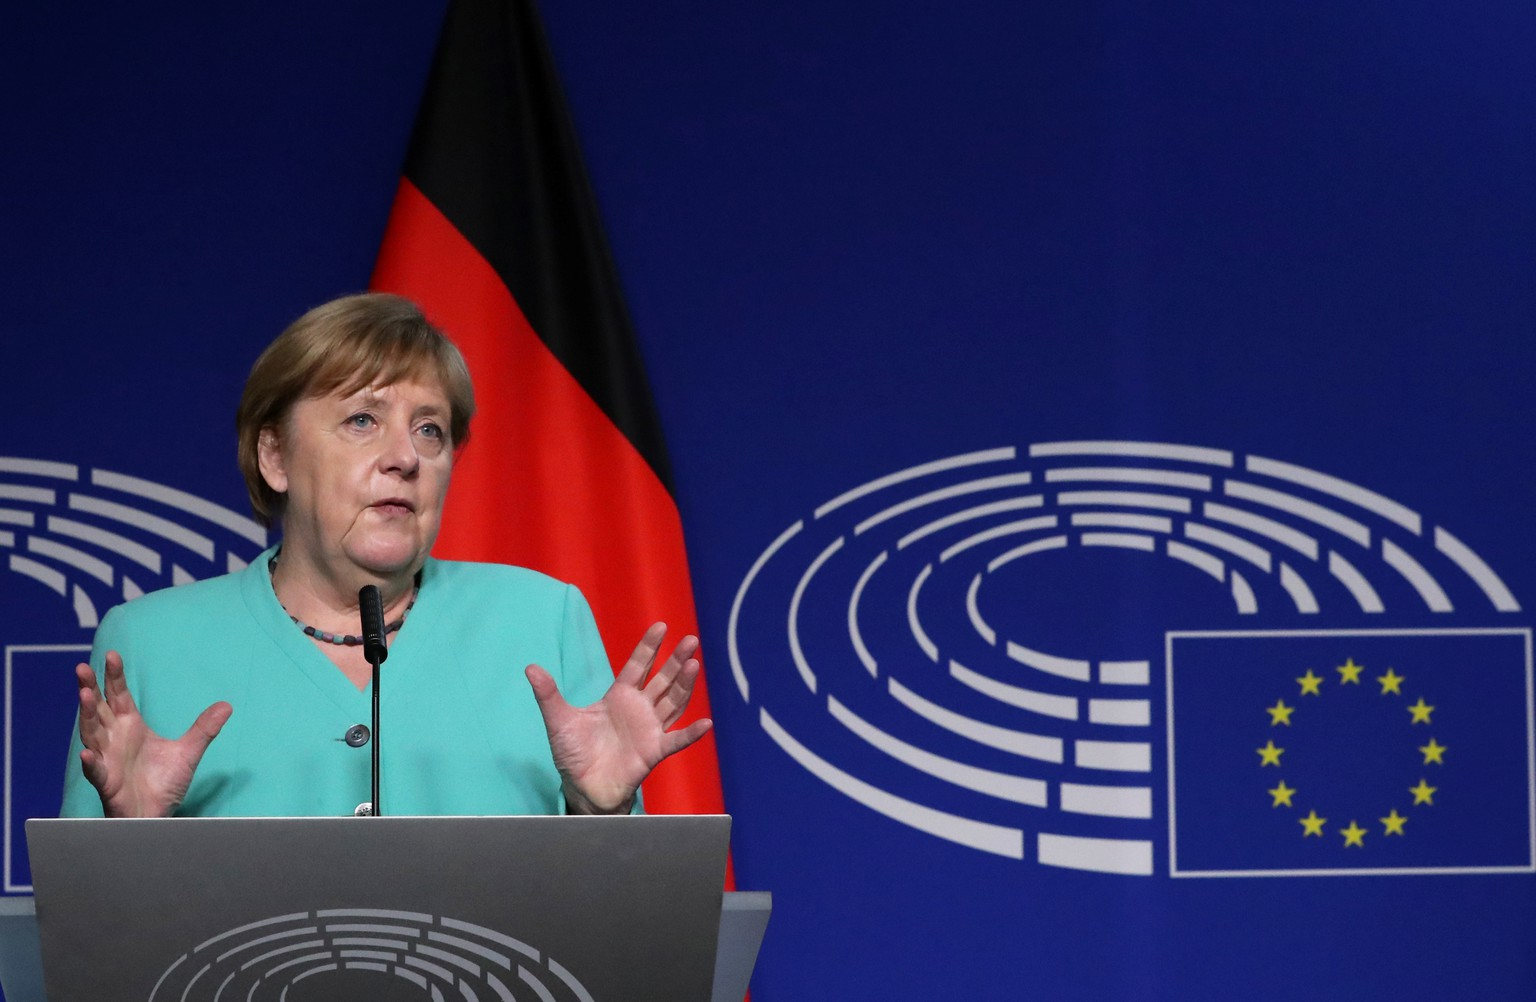 German Chancellor Angela Merkel speaks during an opening statement with European Parliament President David Sassoli (not pictured) ahead of a debate with EU lawmakers on Germany's presidency of the EU, in Brussels, Belgium July 8, 2020.  REUTERS/Yves Herman